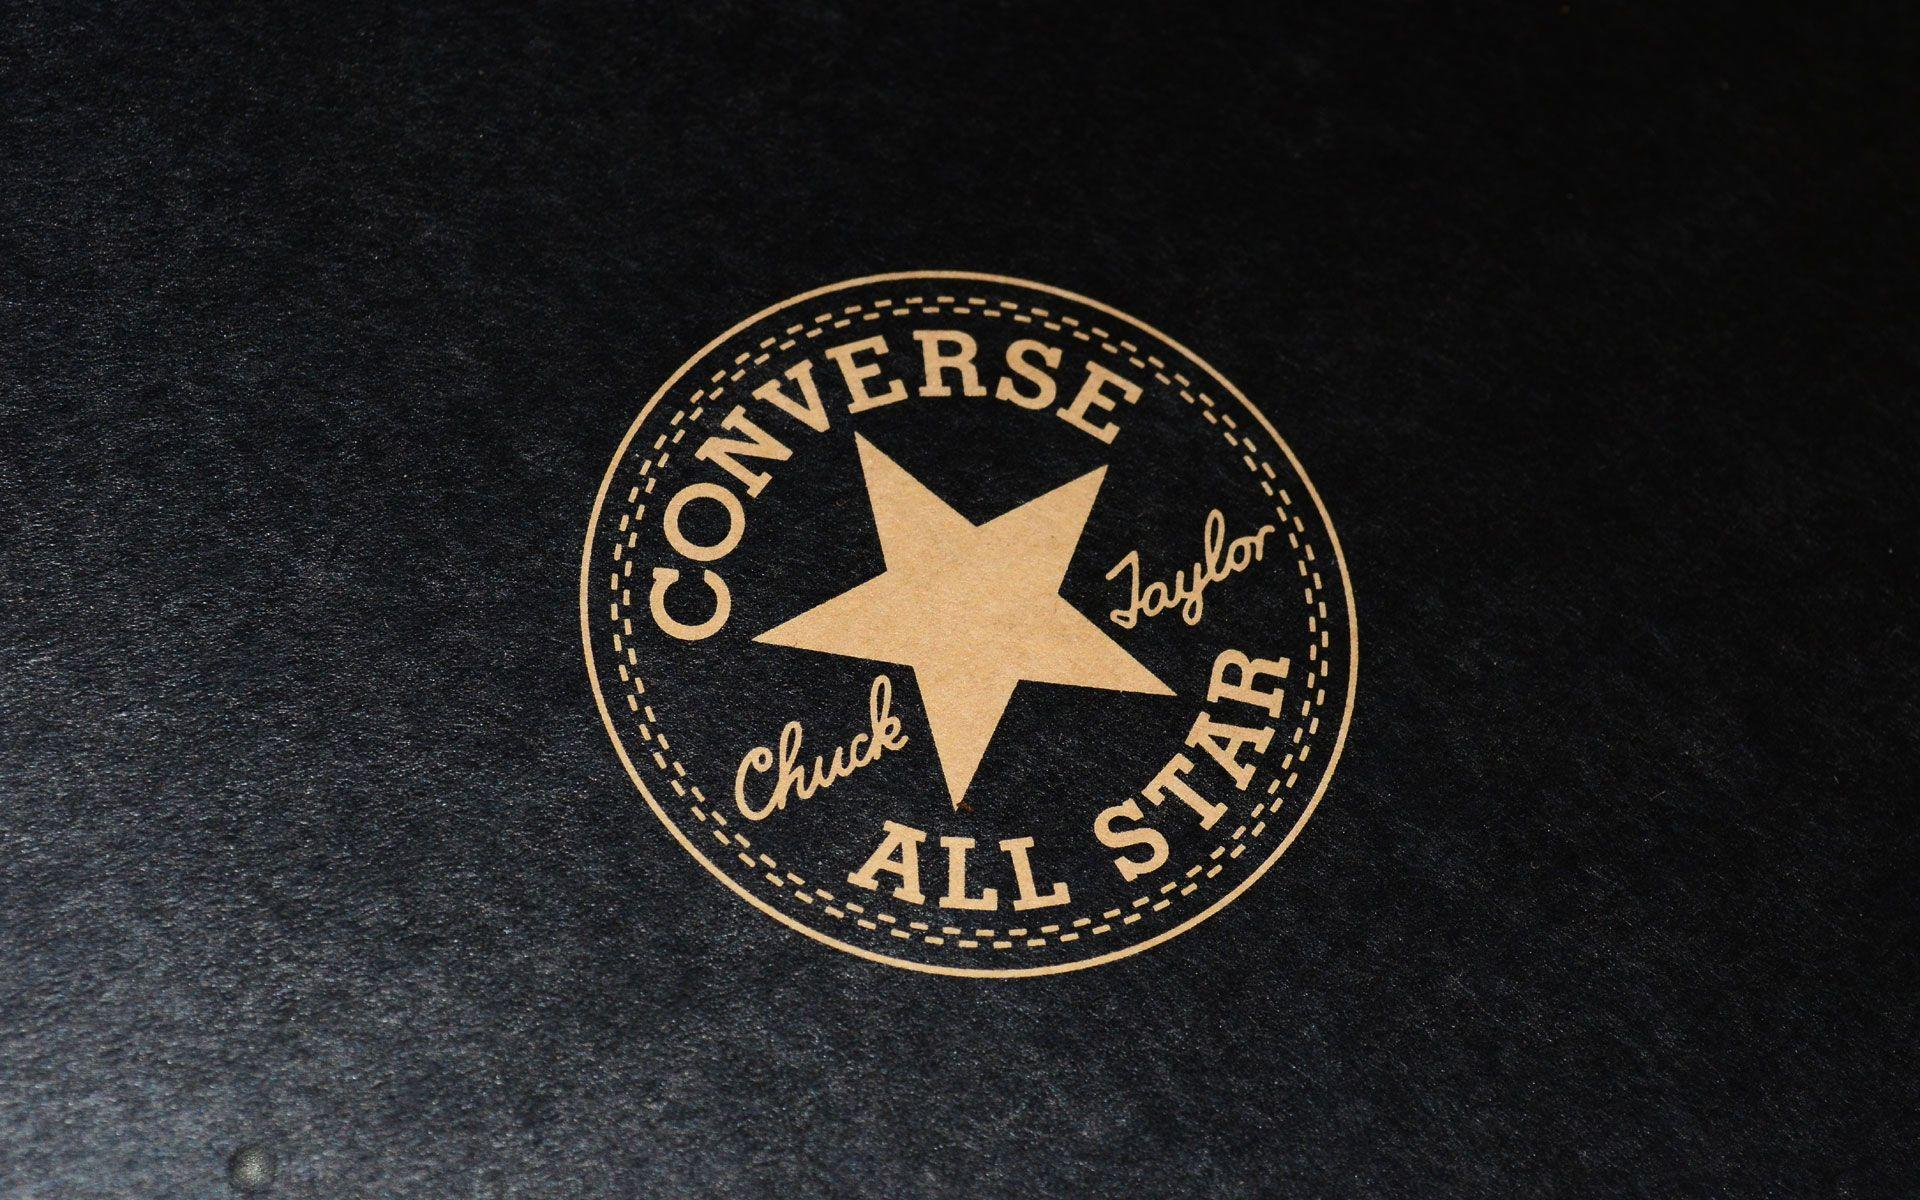 Converse Wallpapers - Top Free Converse